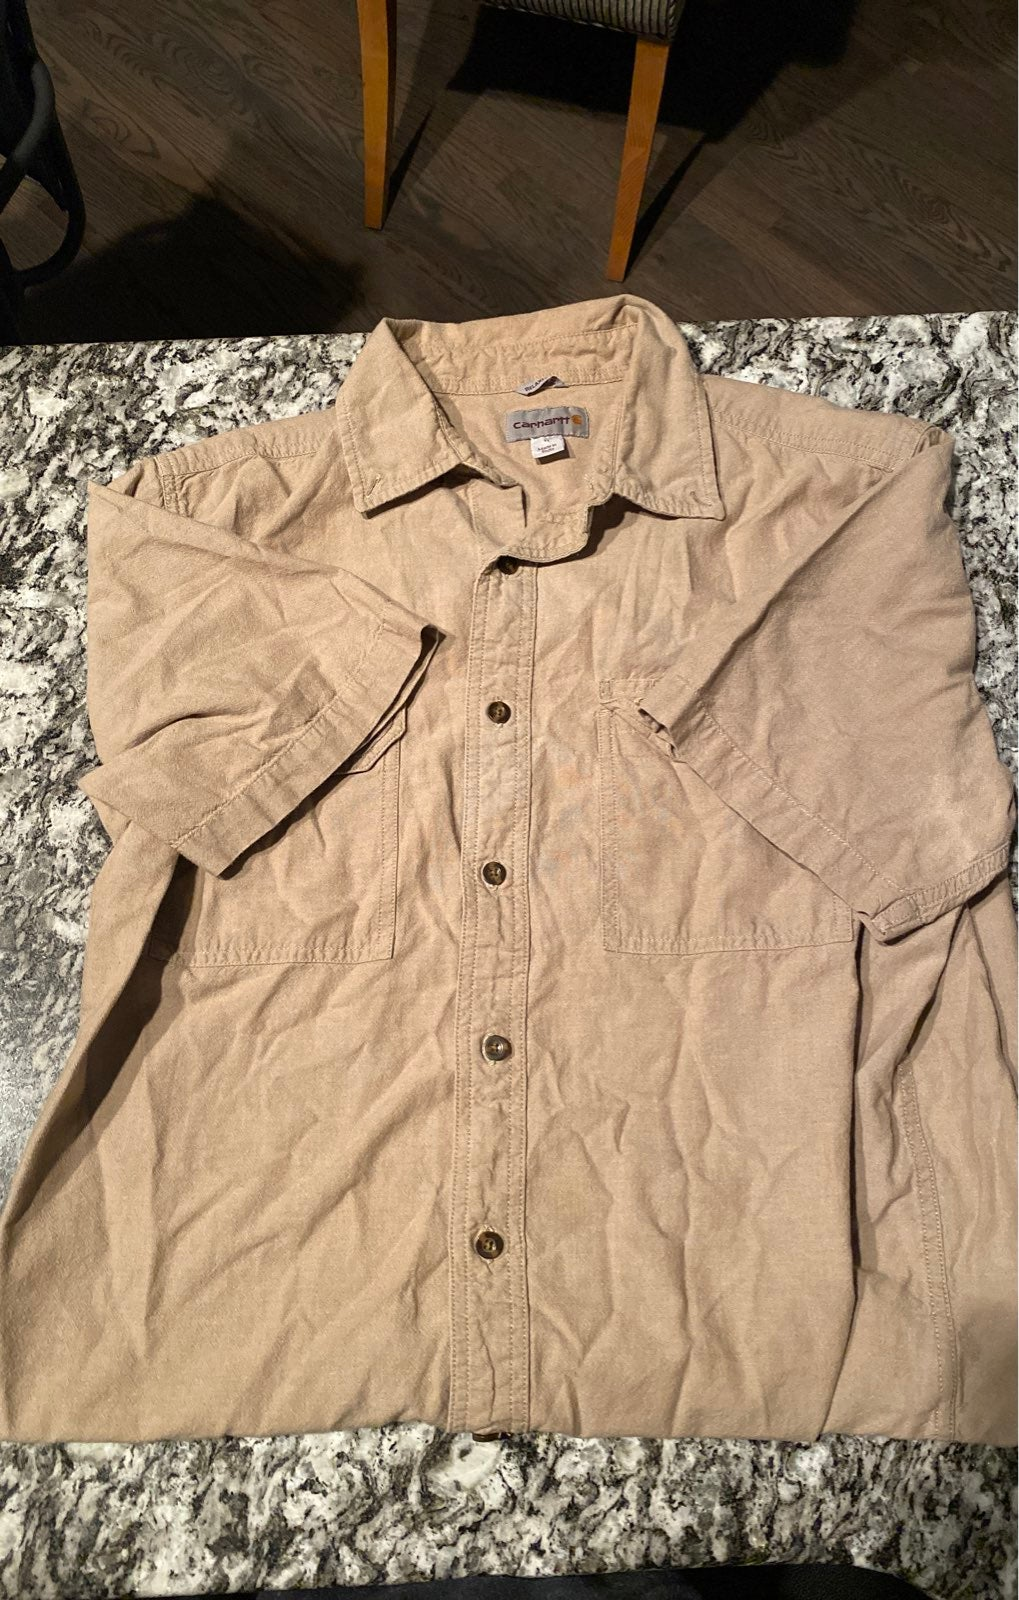 Carhartt Relaxed Fit short sleeve button